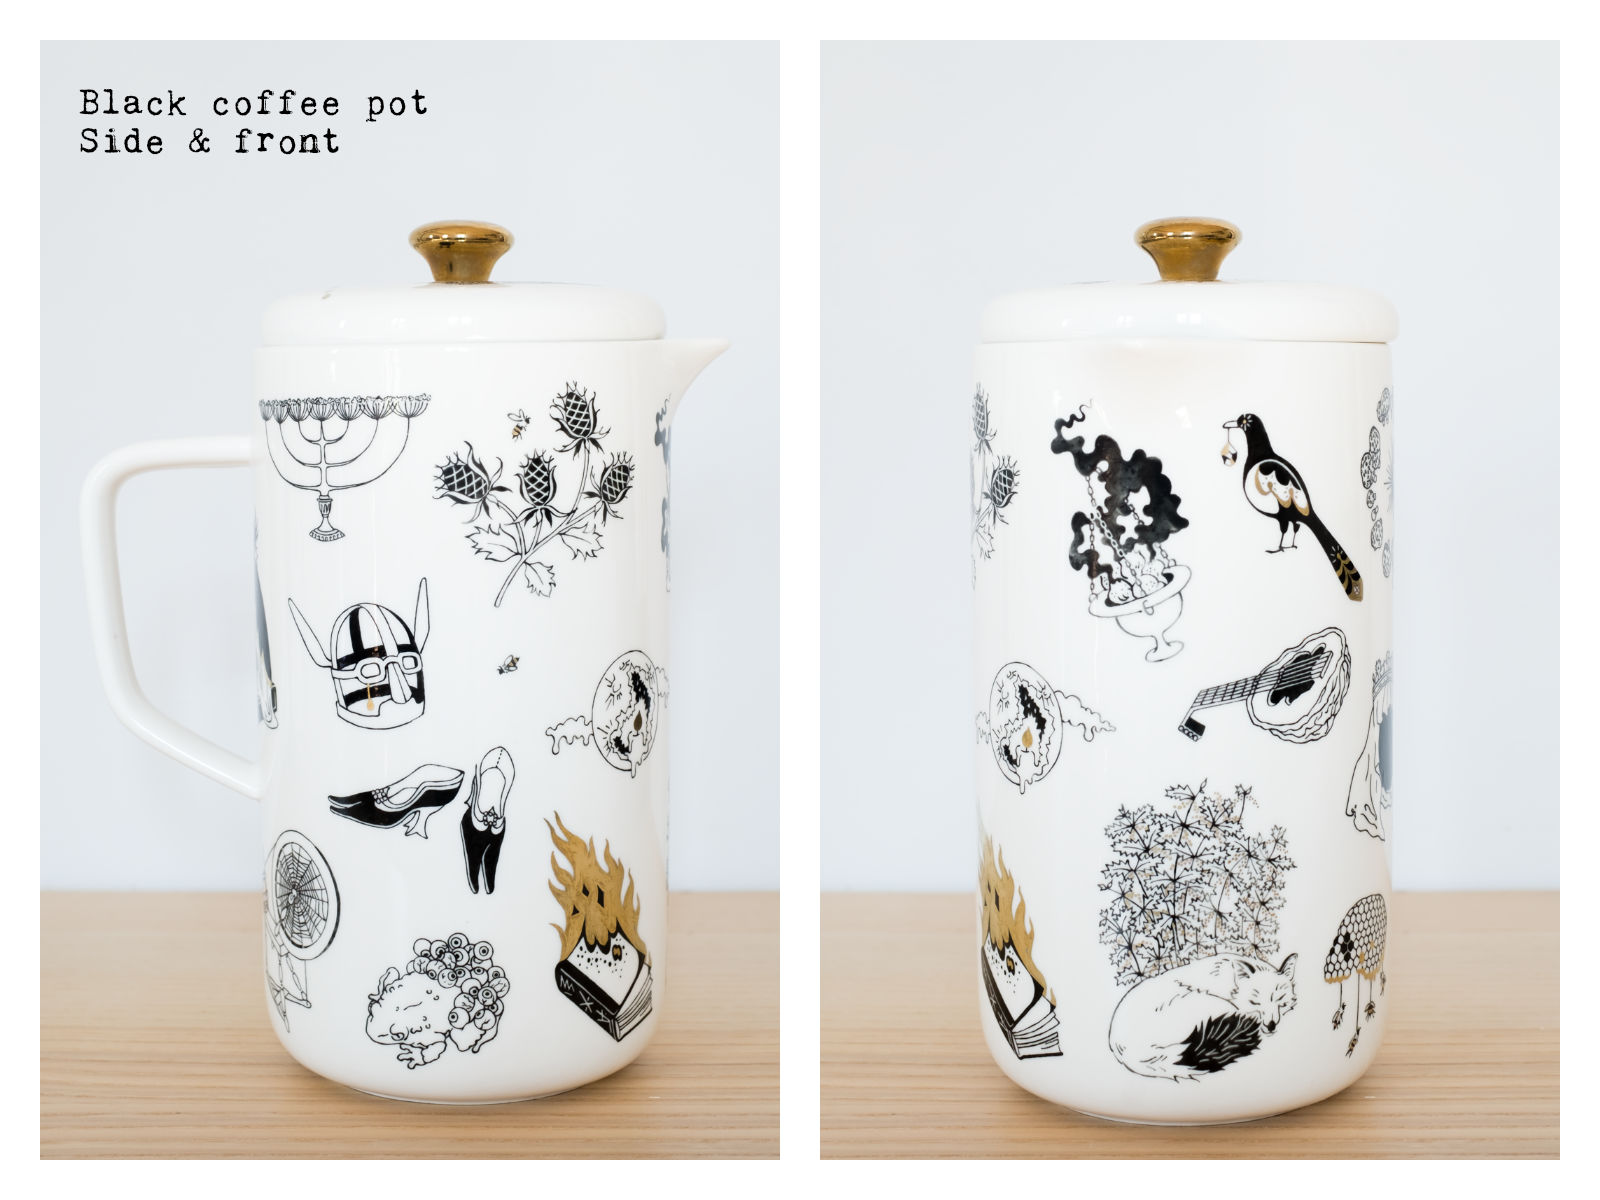 "Side & front of a black coffee pot from ""Enchanteresse"", a collection of painted porcelains by messalyn."